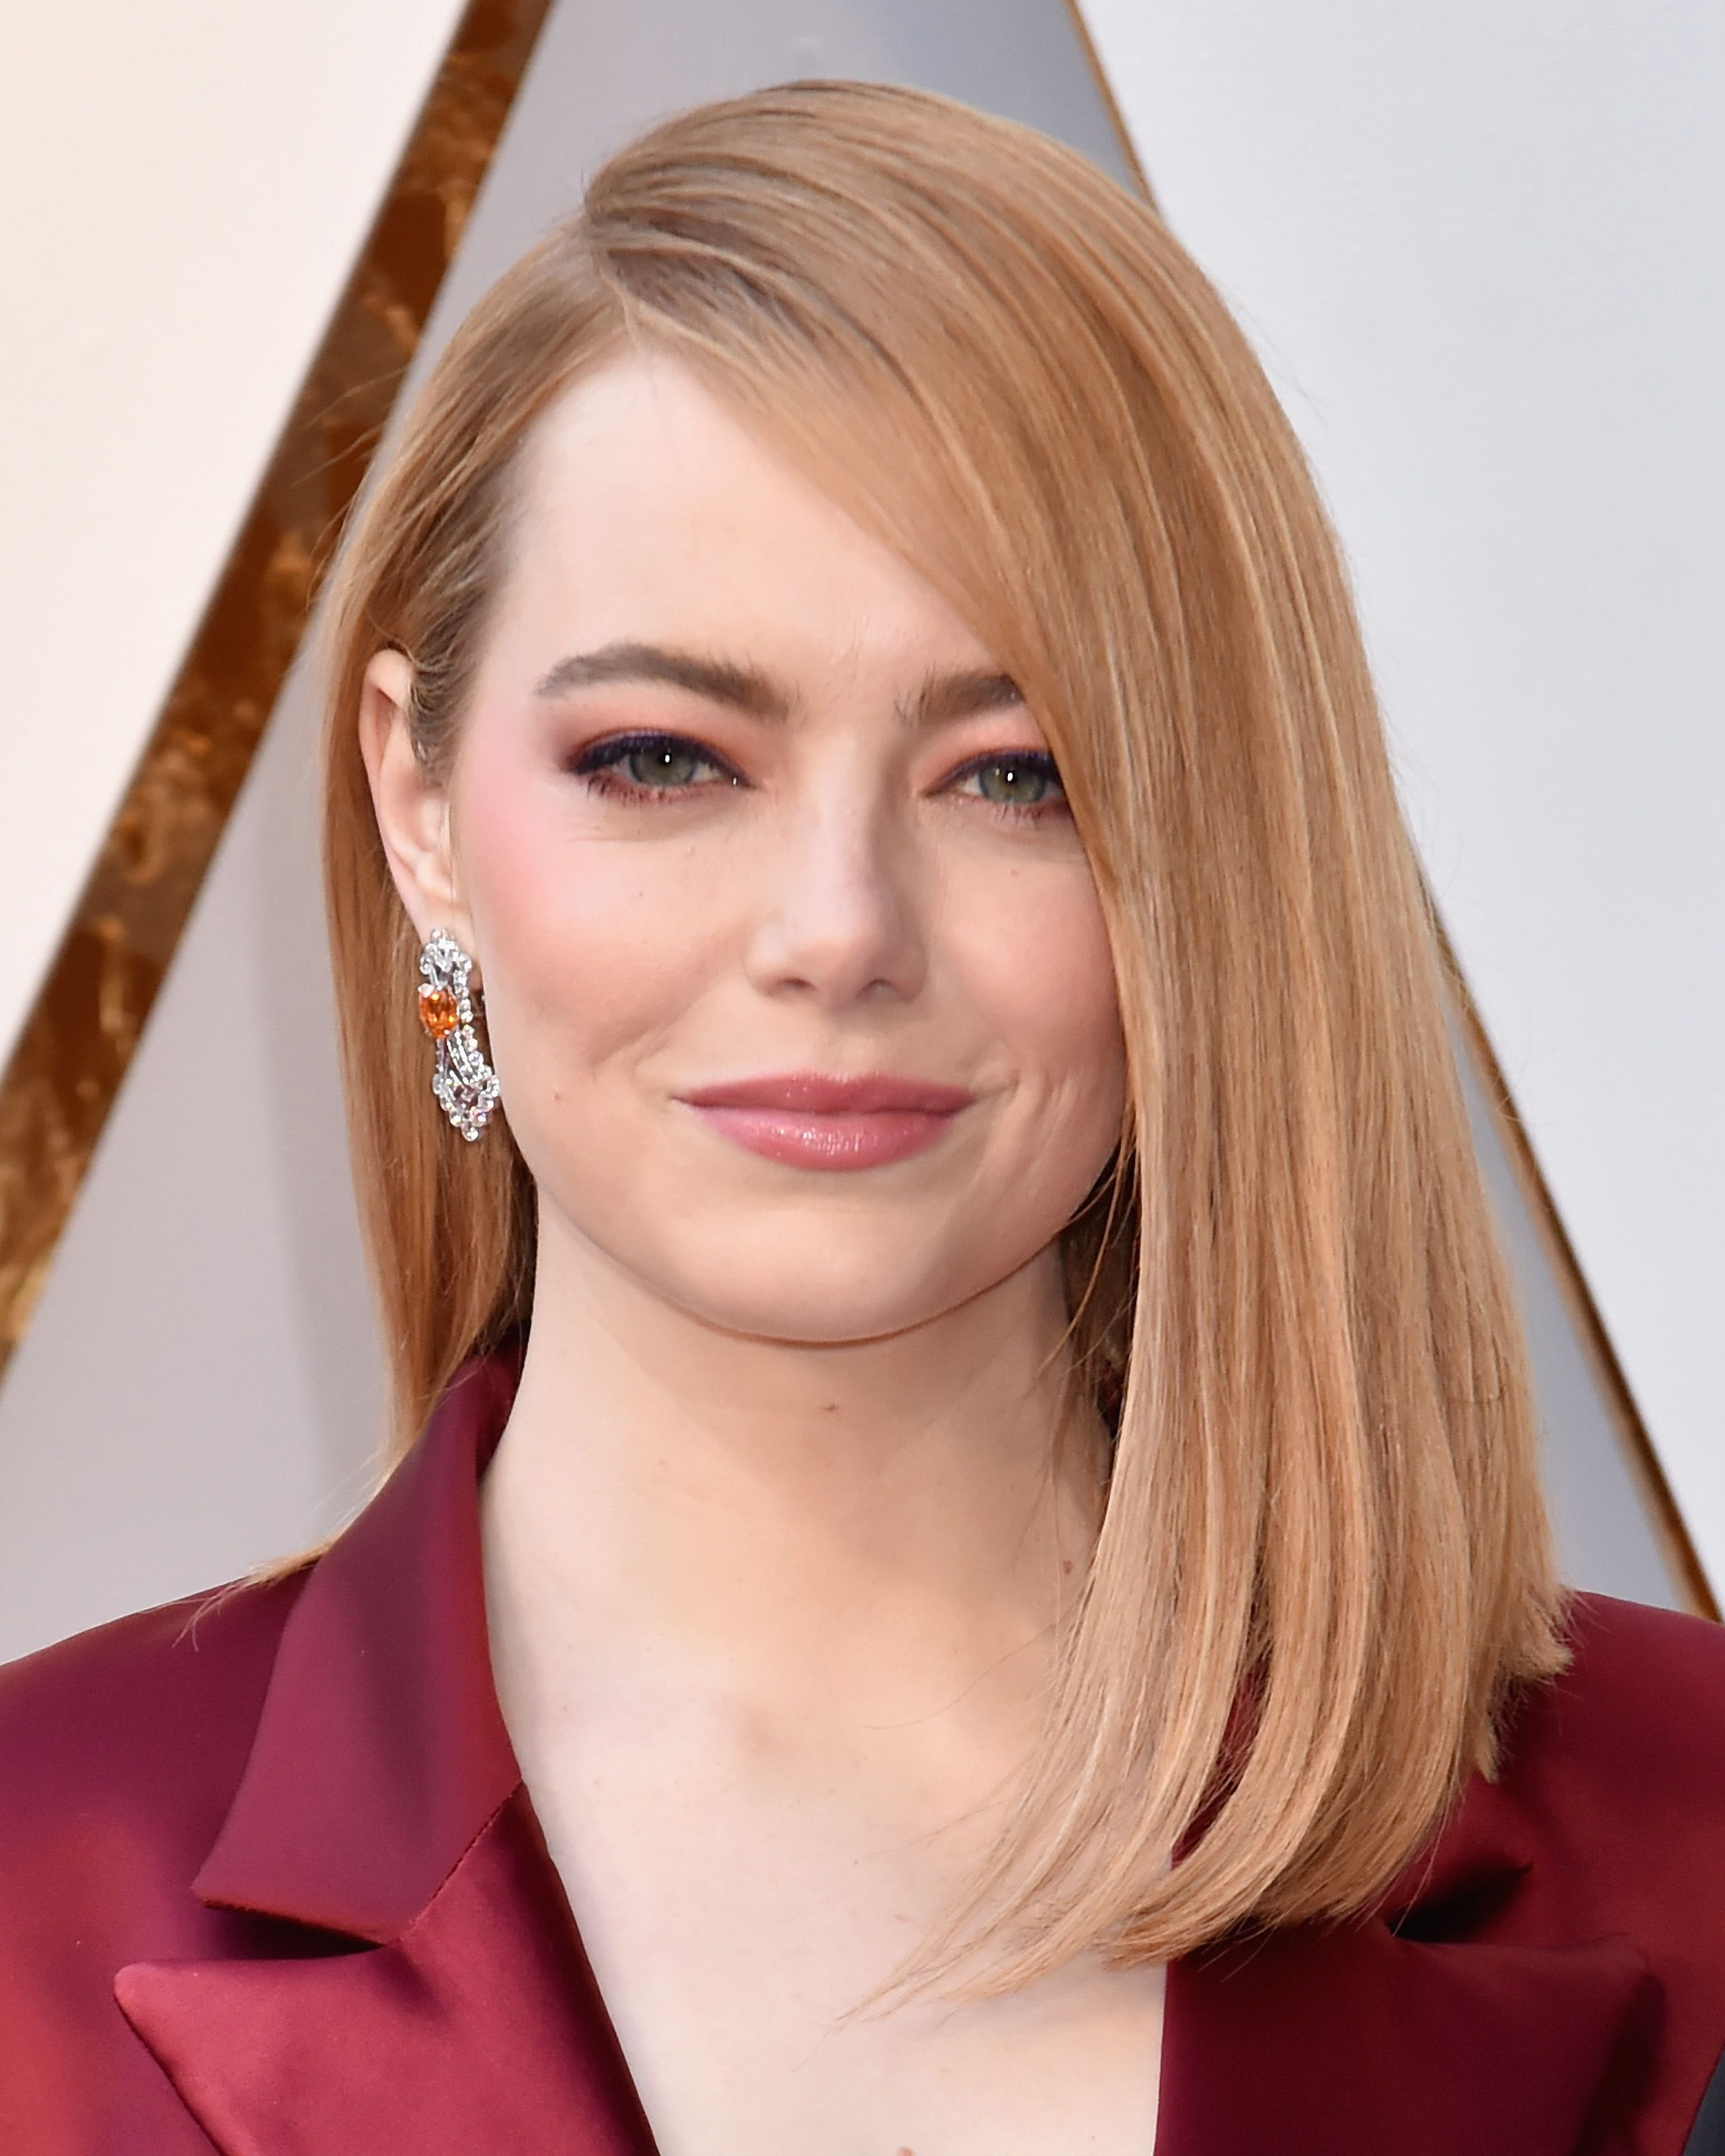 Discussion on this topic: Kajjanbai, emma-stone/